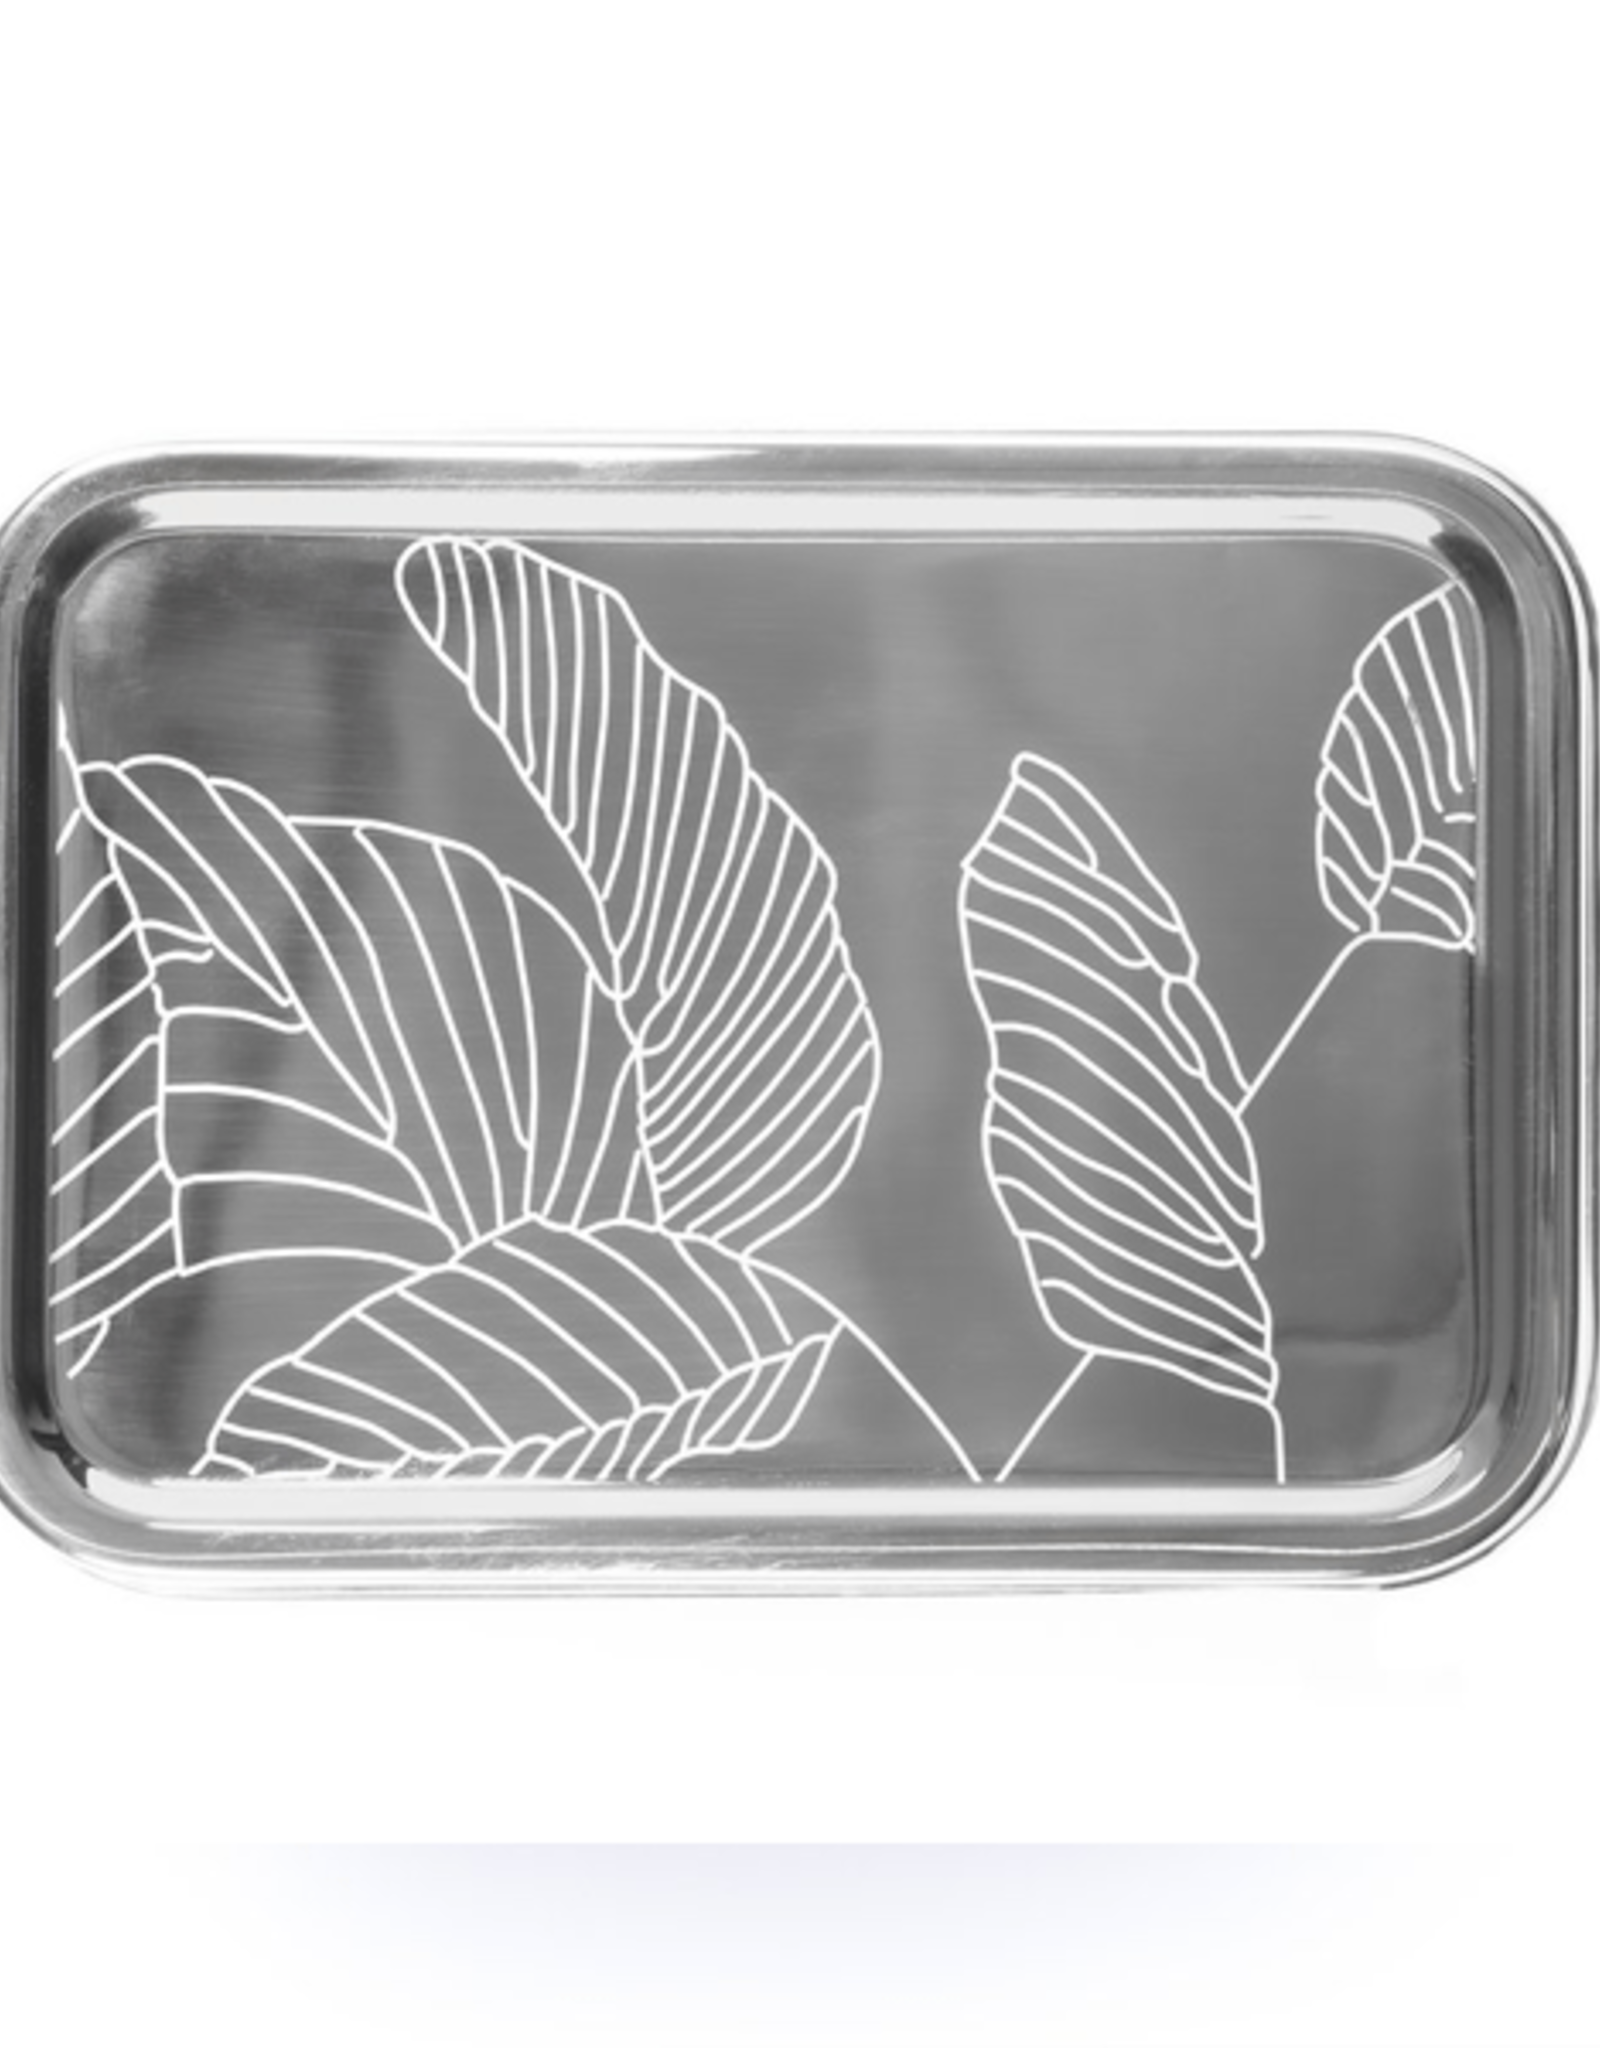 Solo Rectangle Engraved with Leaves